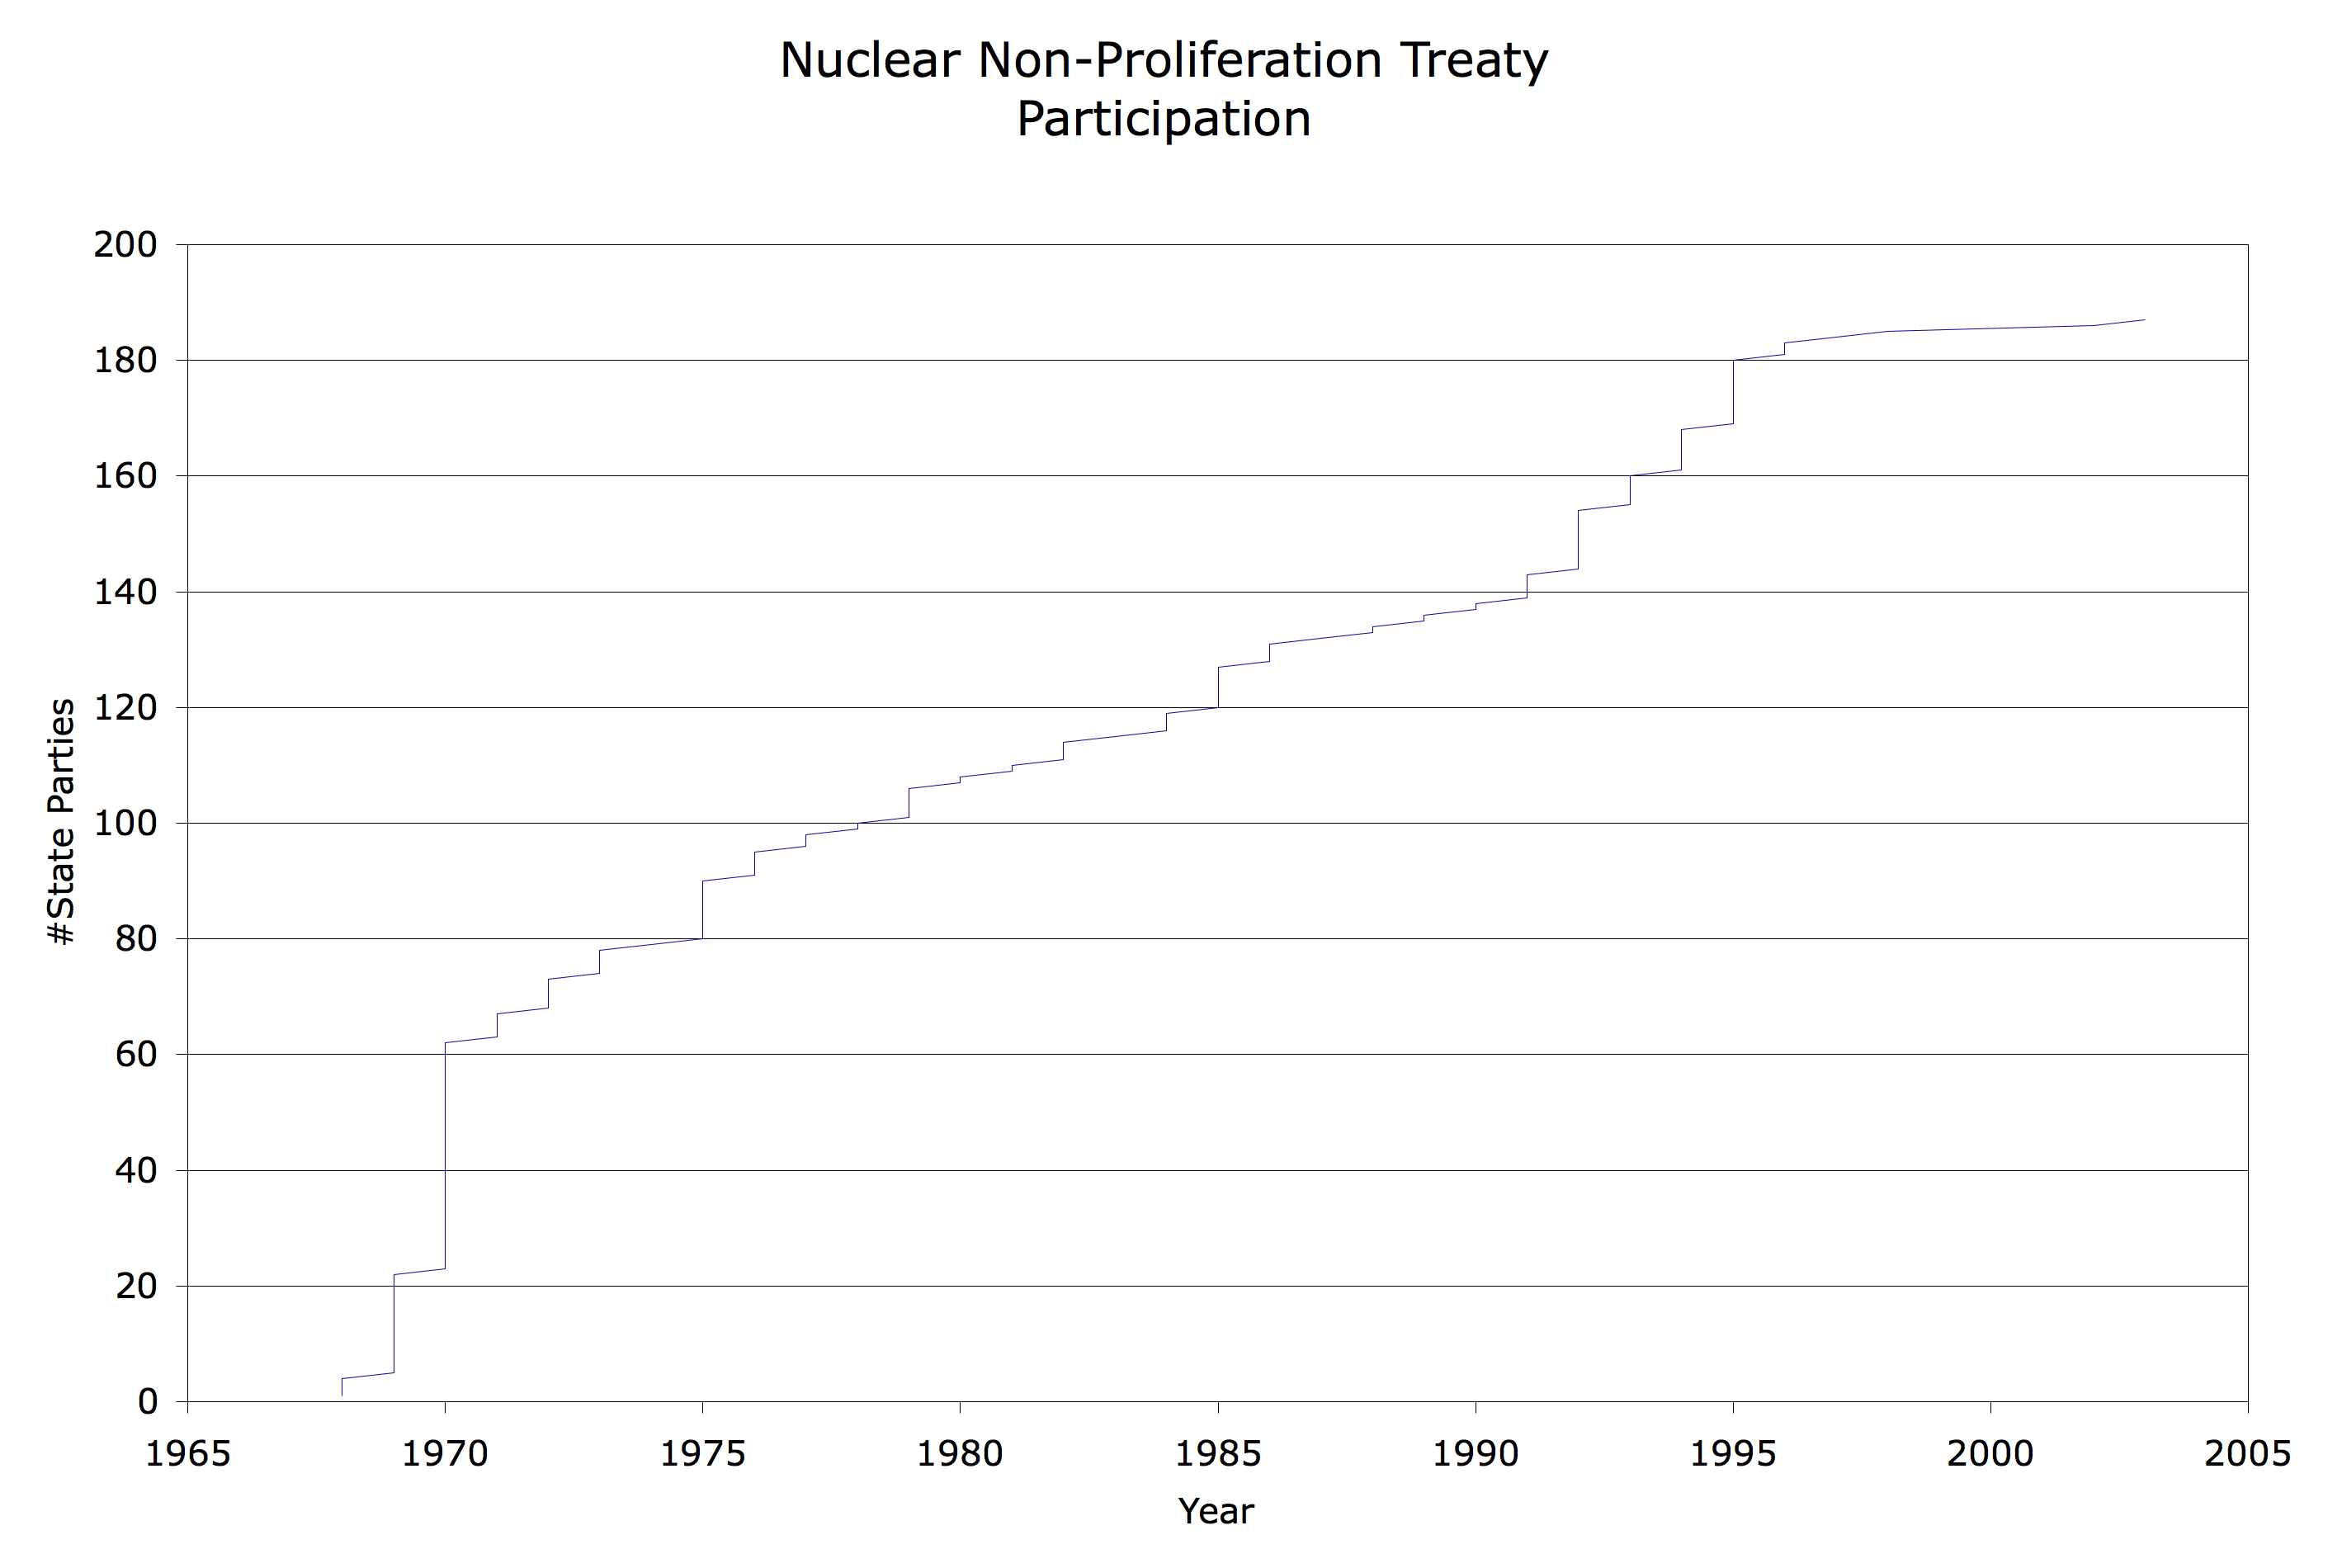 nuclear non-proliferation treaty essay The 1987 intermediate-range nuclear forces treaty removed a whole category of nuclear non-proliferation measures are not confined to the adelphi papers.